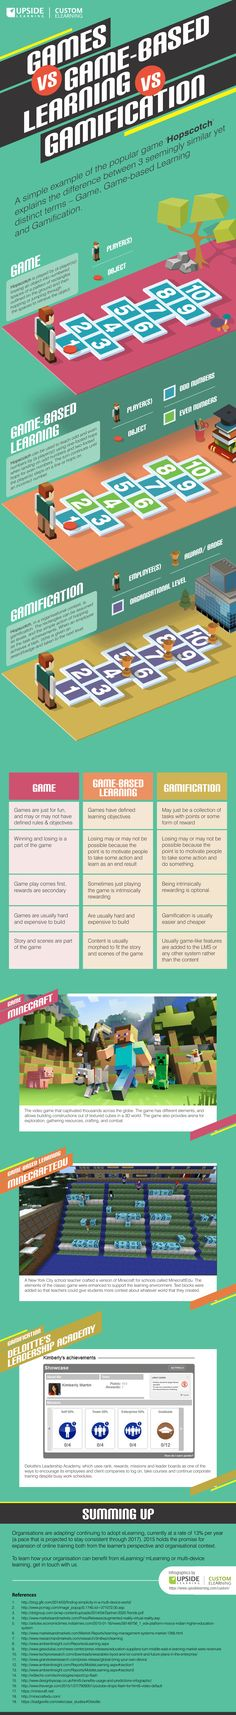 Games vs Game-based Learning vs Gamification, an infographic, is a simplified explanation to how these similar sounding terms differ.